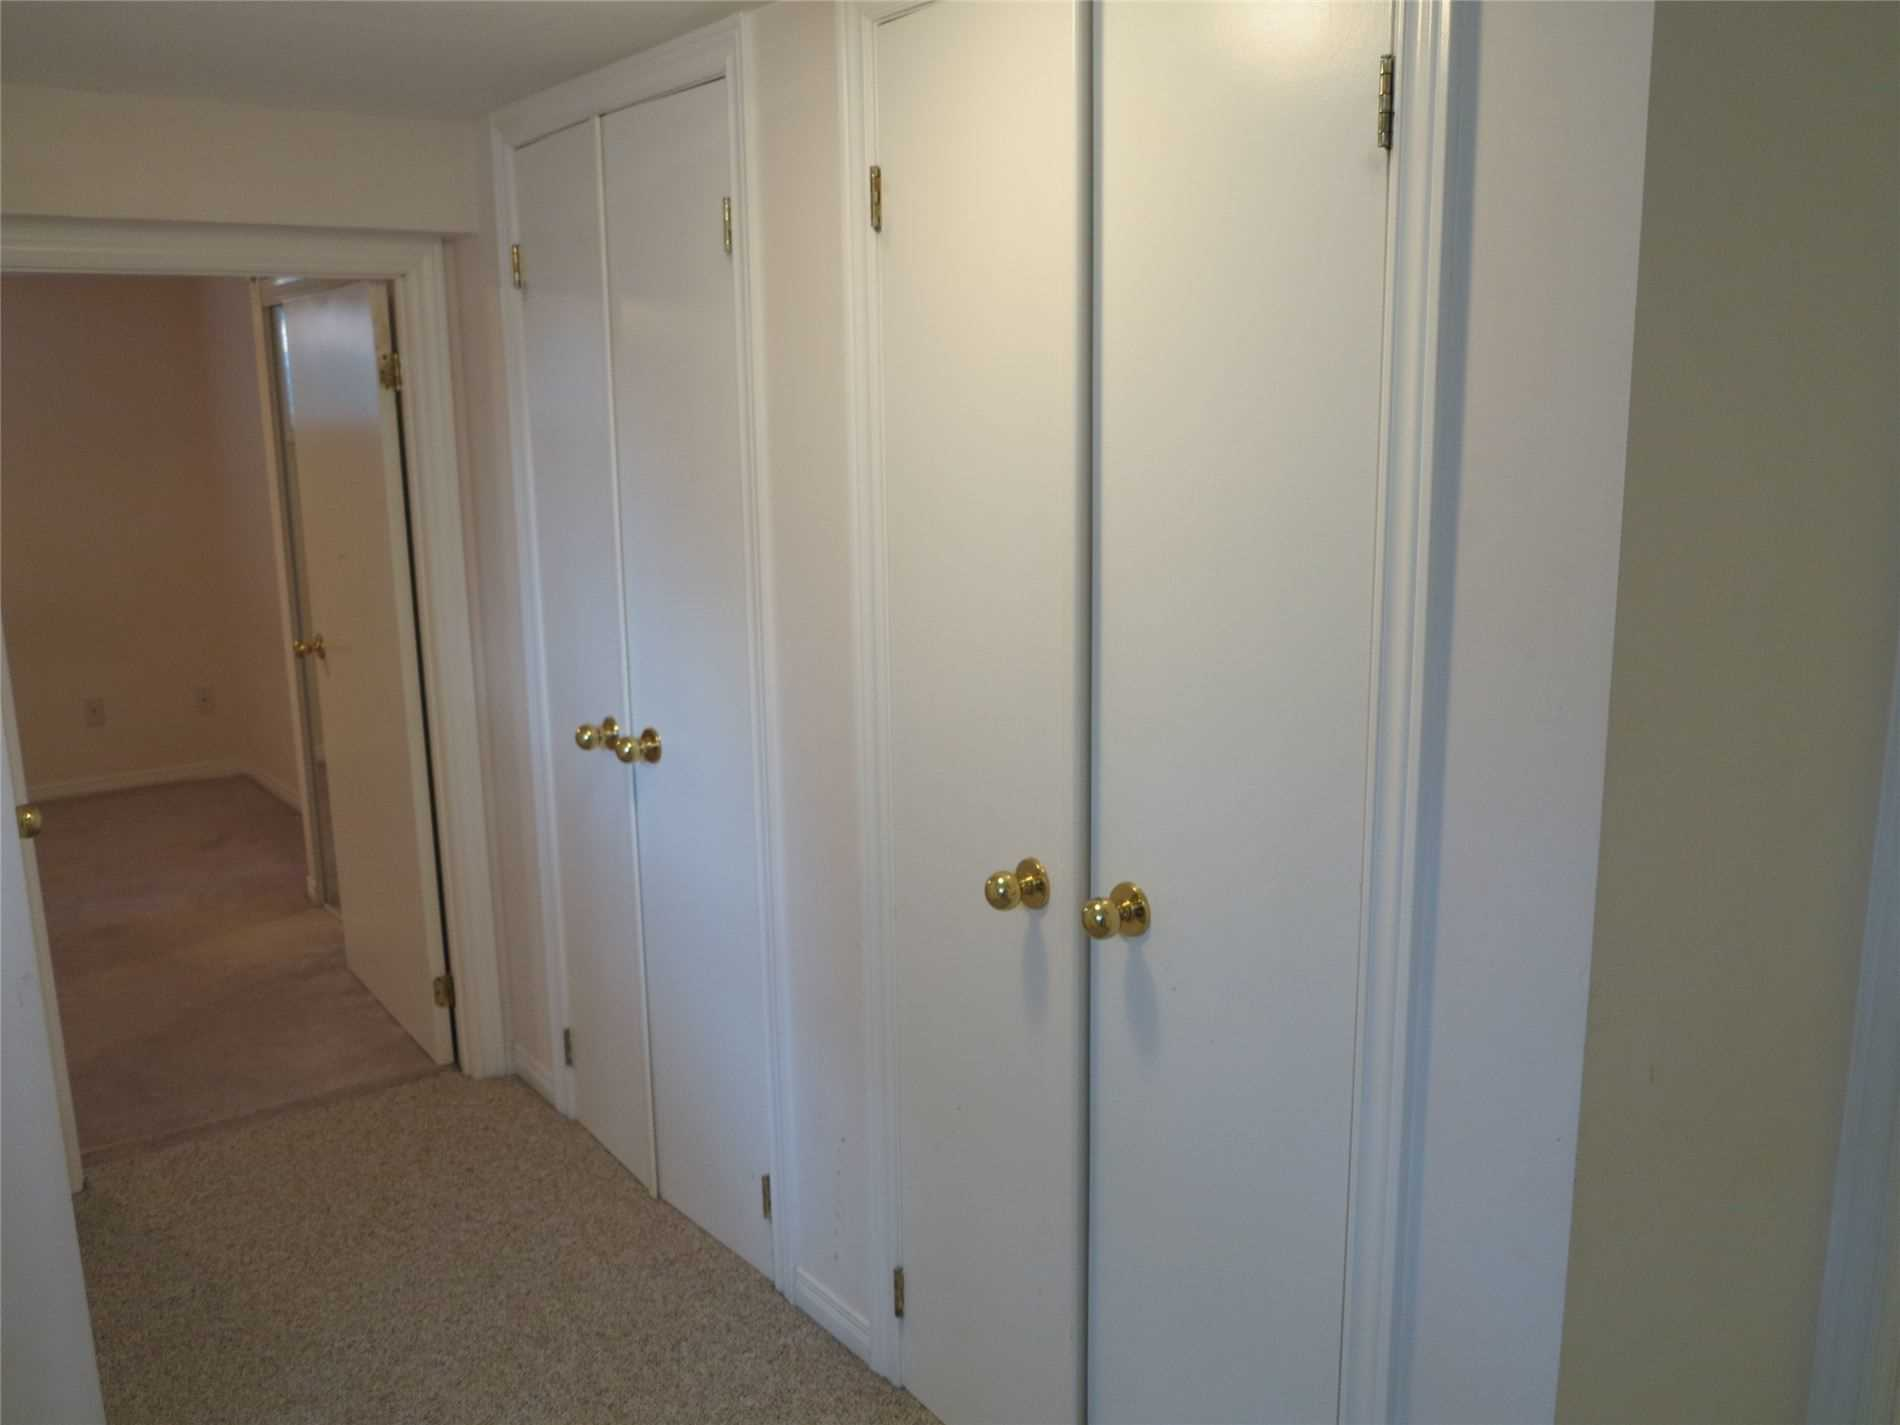 Image 22 of 30 showing inside of 3 Bedroom Detached Bungalow for Lease at 456 Drewry Ave, Toronto M2R2K7